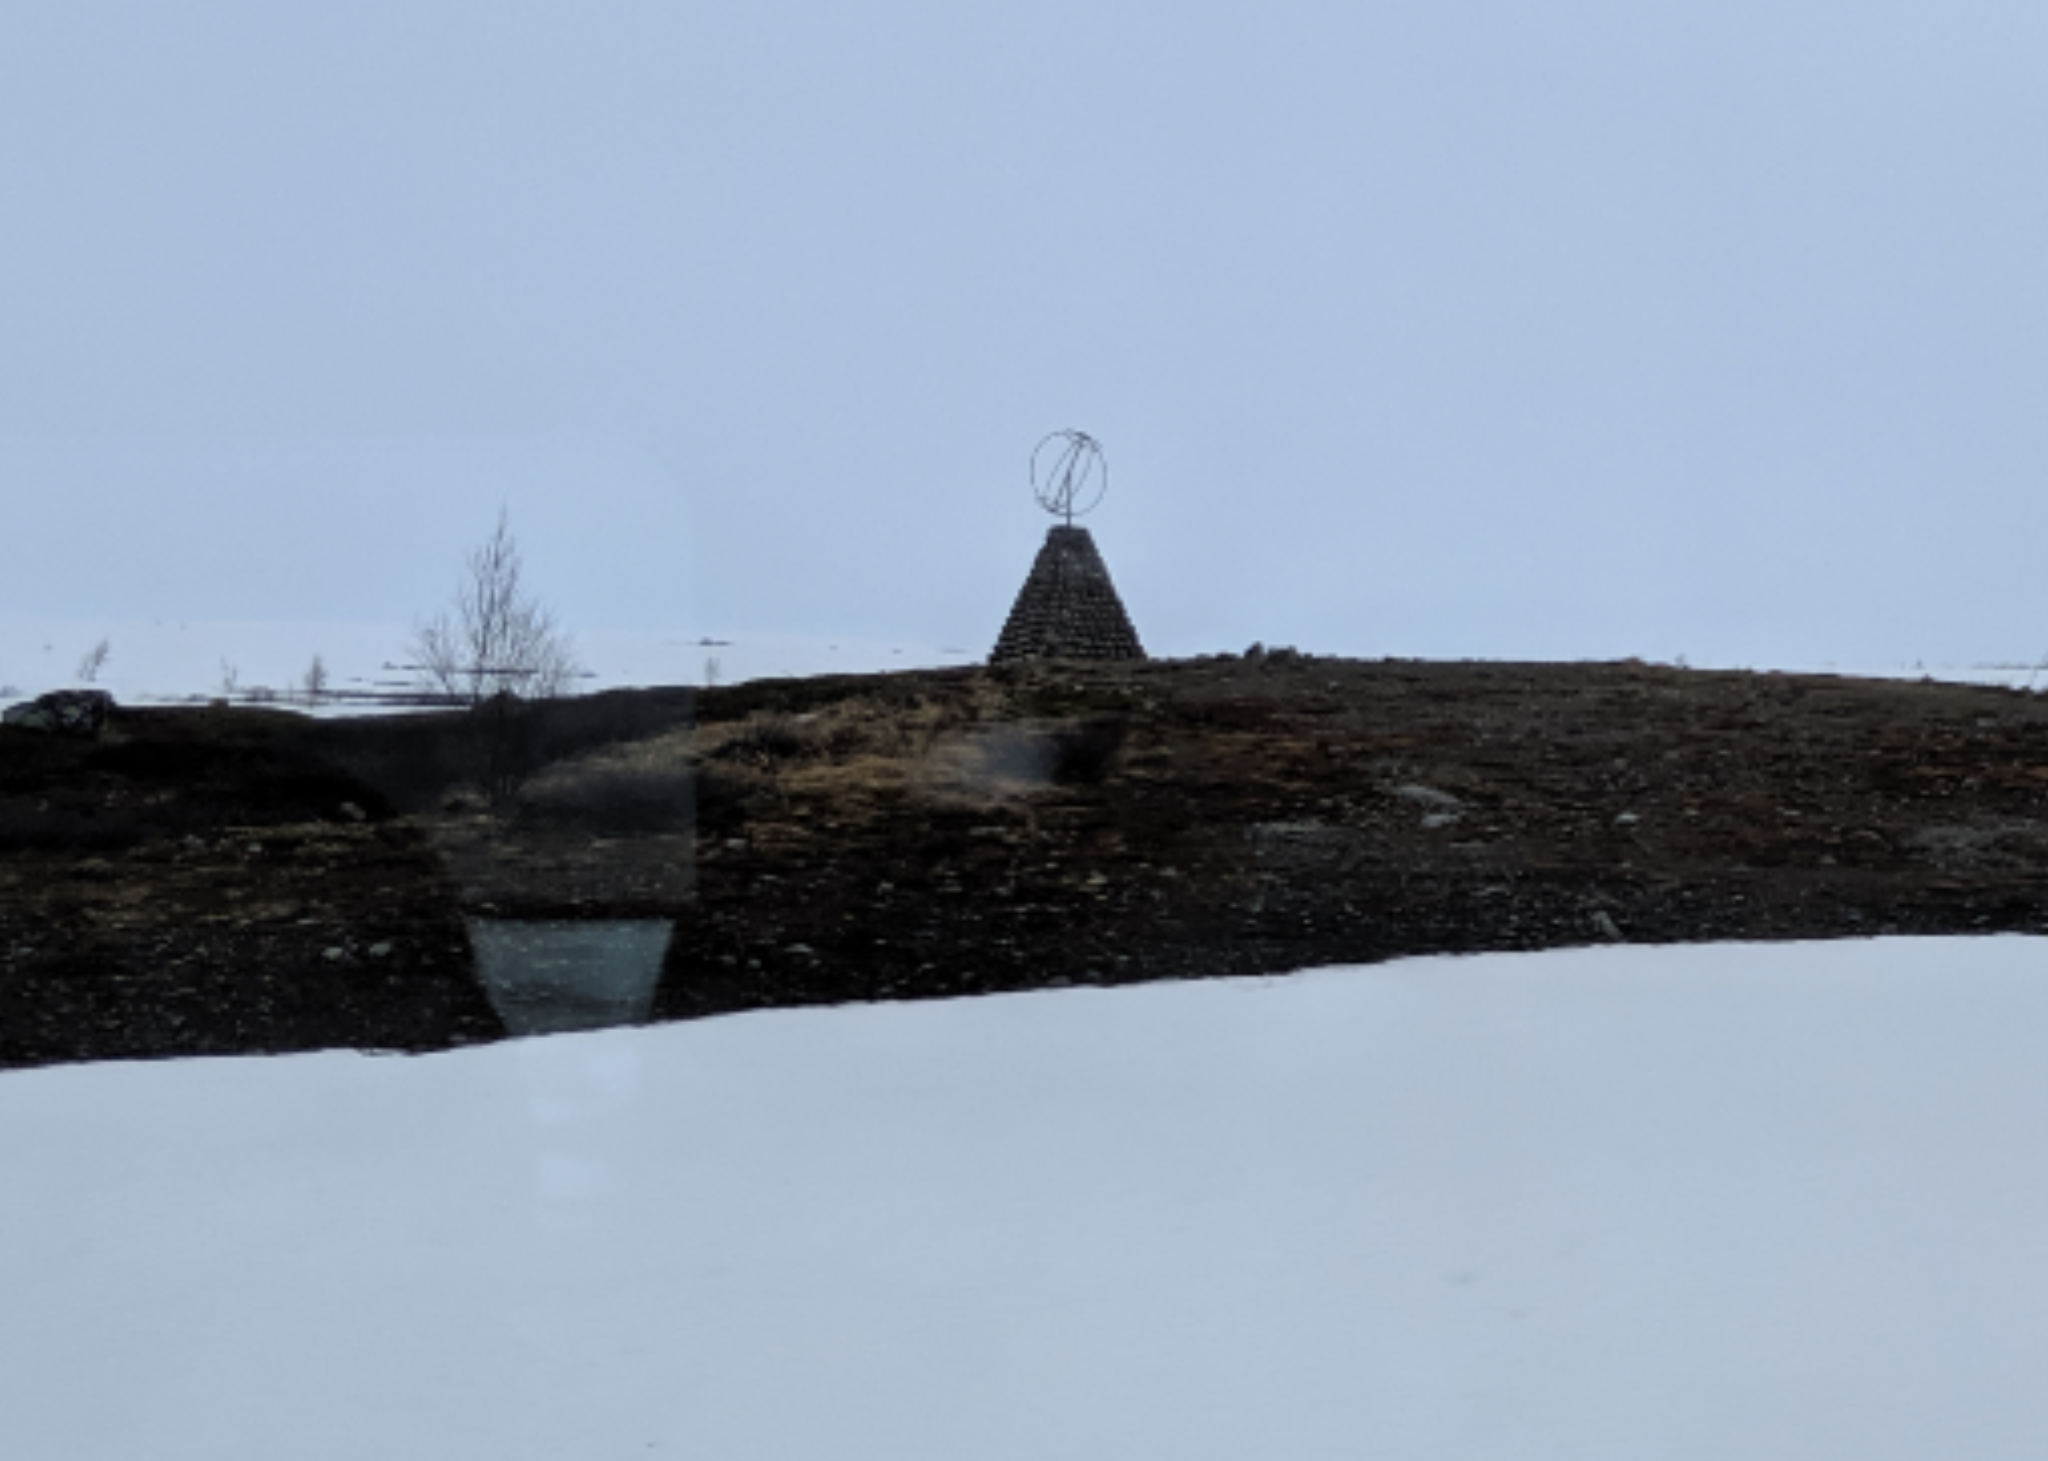 This photo was also taken from the train. It is a photo of the Arctic Circle marker.